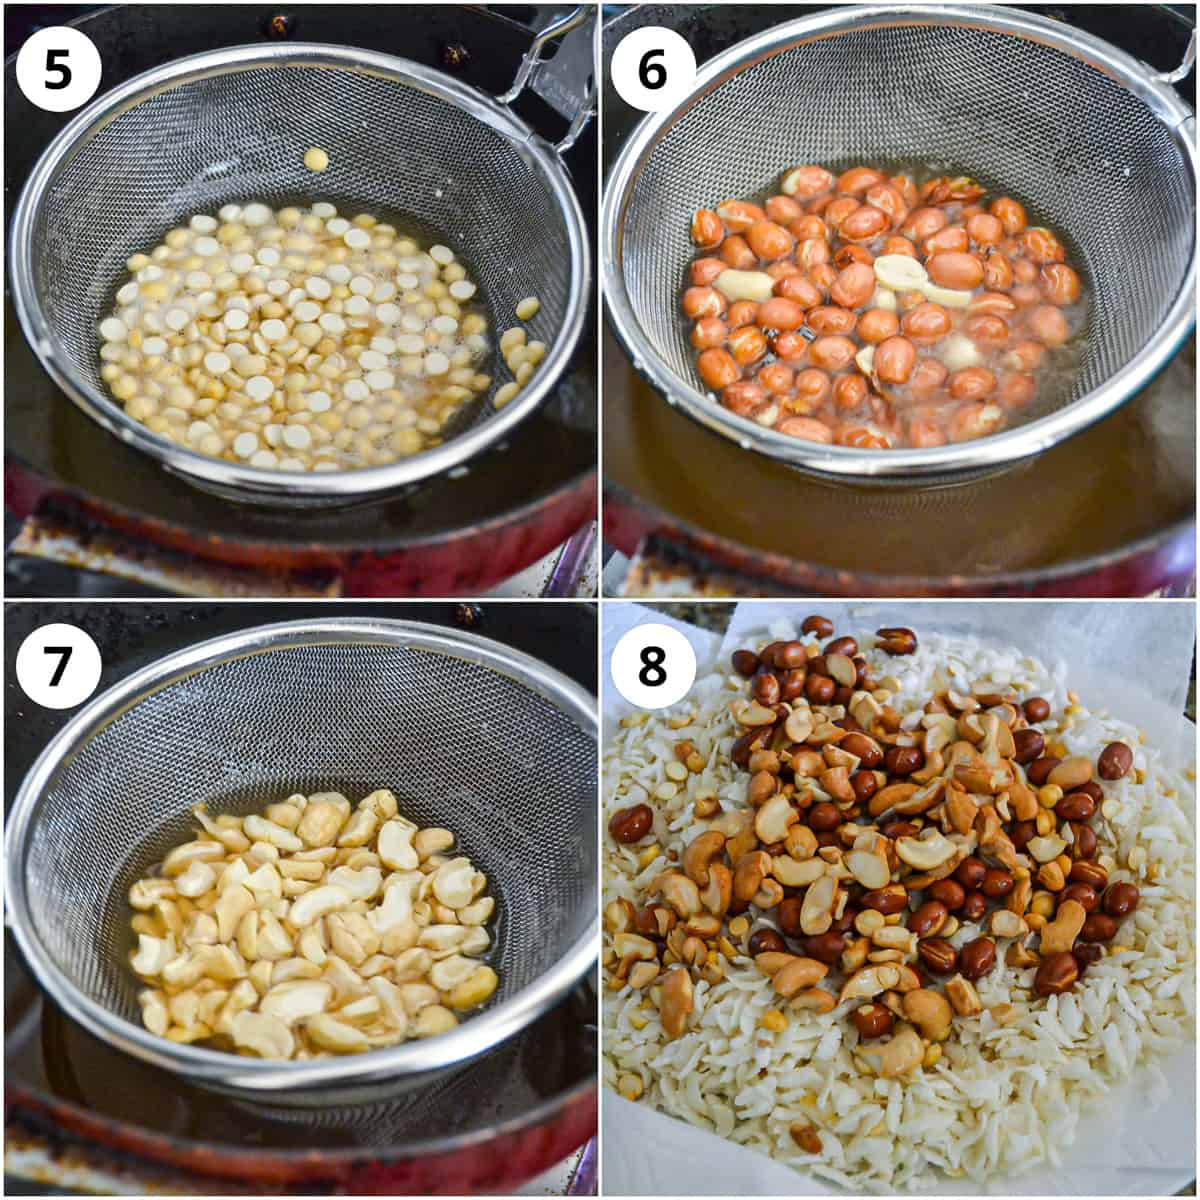 Steps showing frying cashews, peanuts and dalia